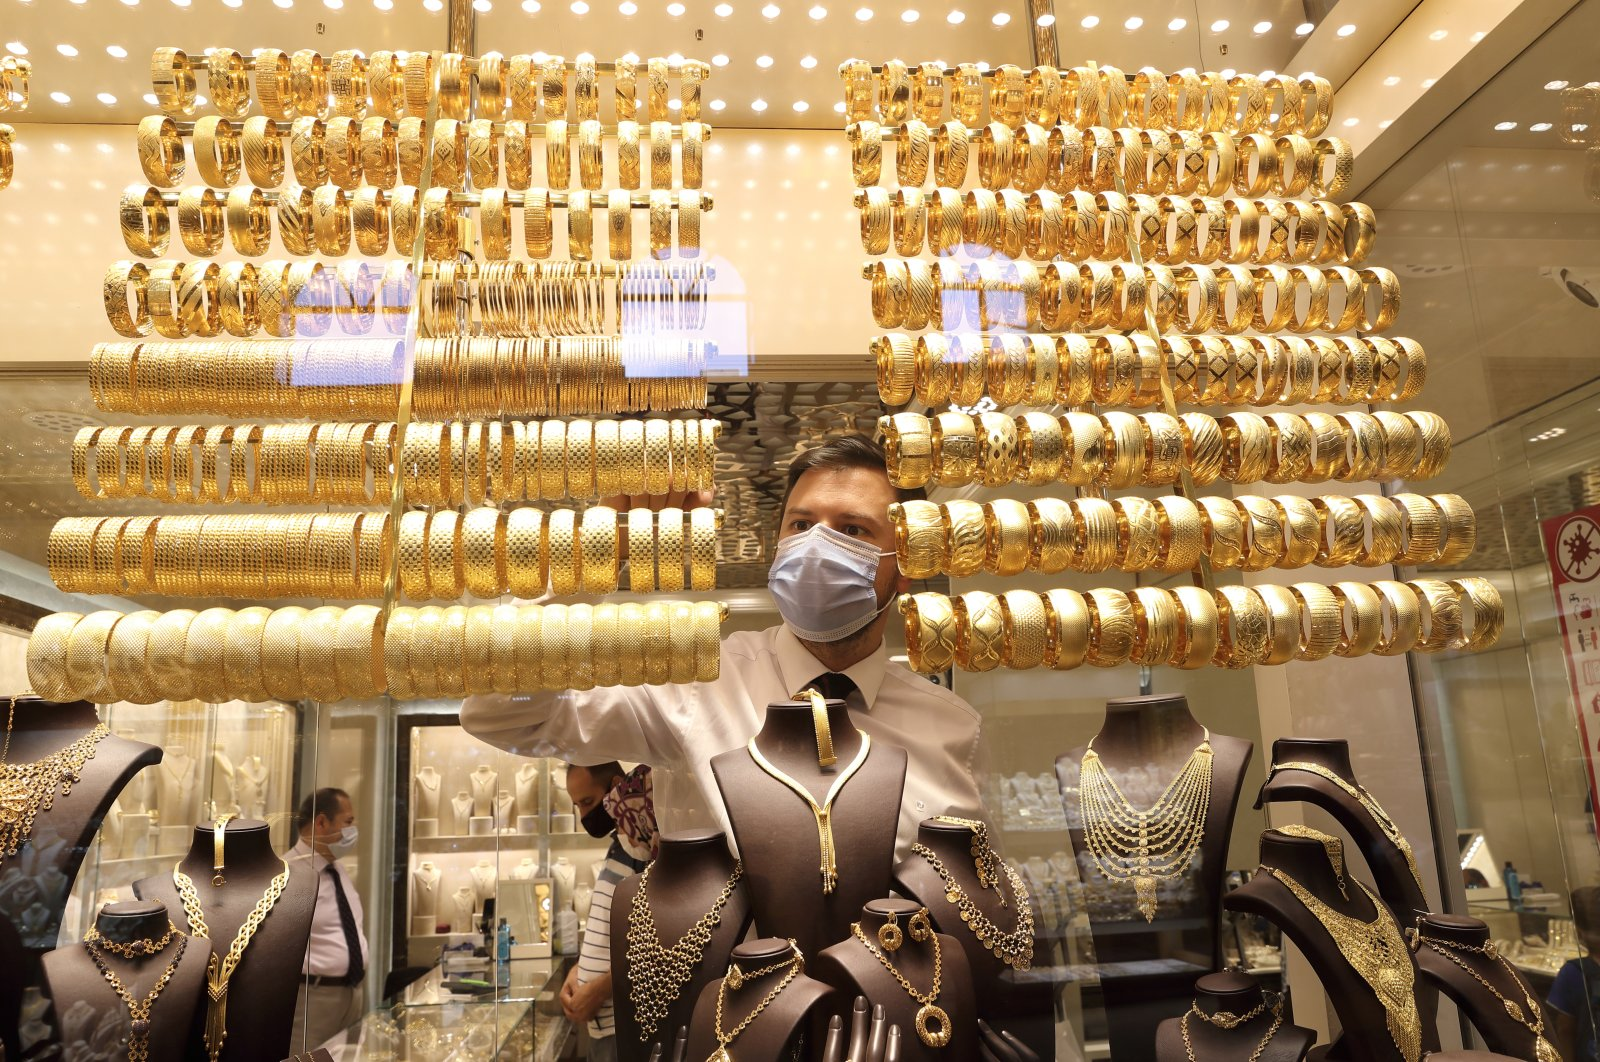 A goldsmith wearing a protective face mask arranges golden bangles at a jewelry shop at the Grand Bazaar in Istanbul, Turkey, Aug. 6, 2020. (Reuters Photo)